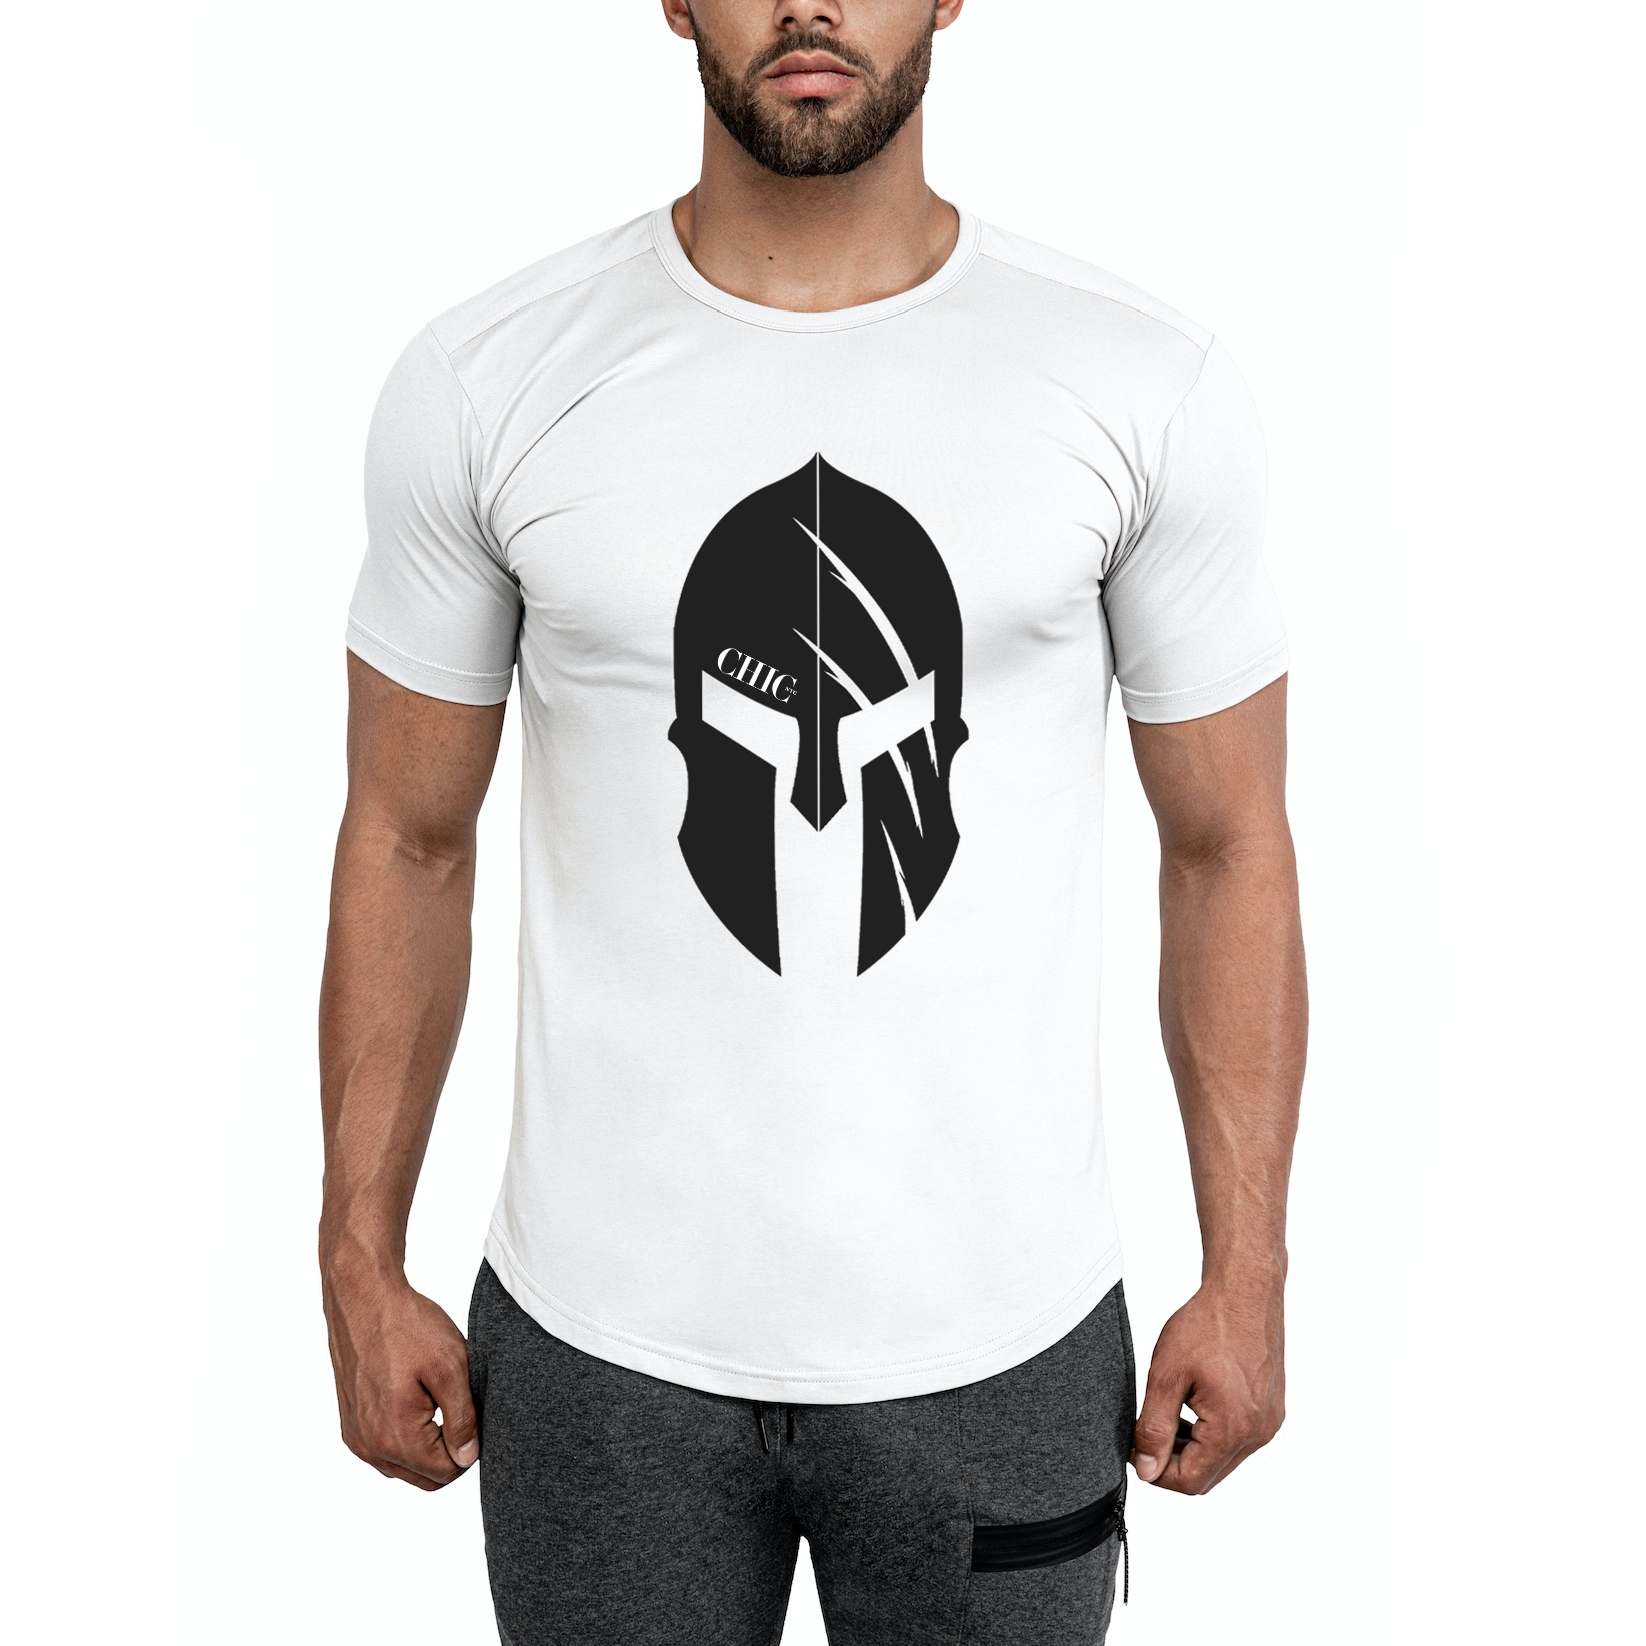 White Spartan Fitness T-Shirt